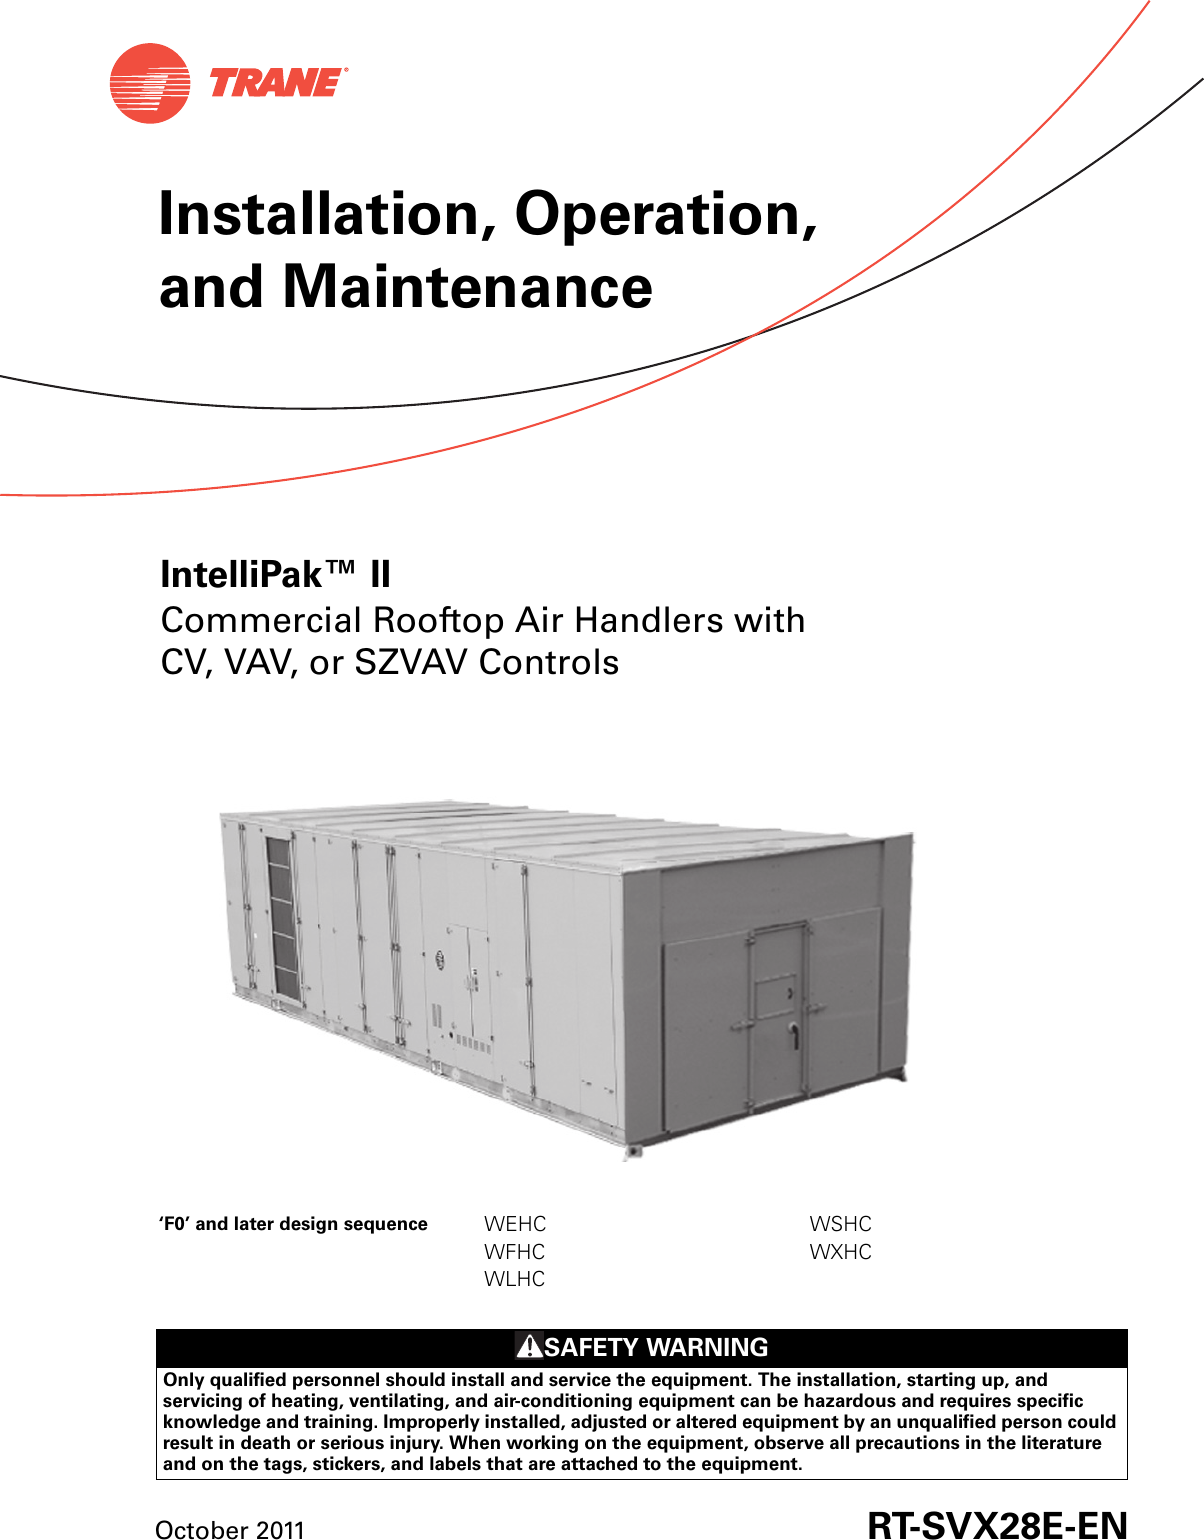 Trane Intellipak Ii 90 To 162 Tons Installation And Maintenance Hard Start Kit Wiring Diagram Manual Operation